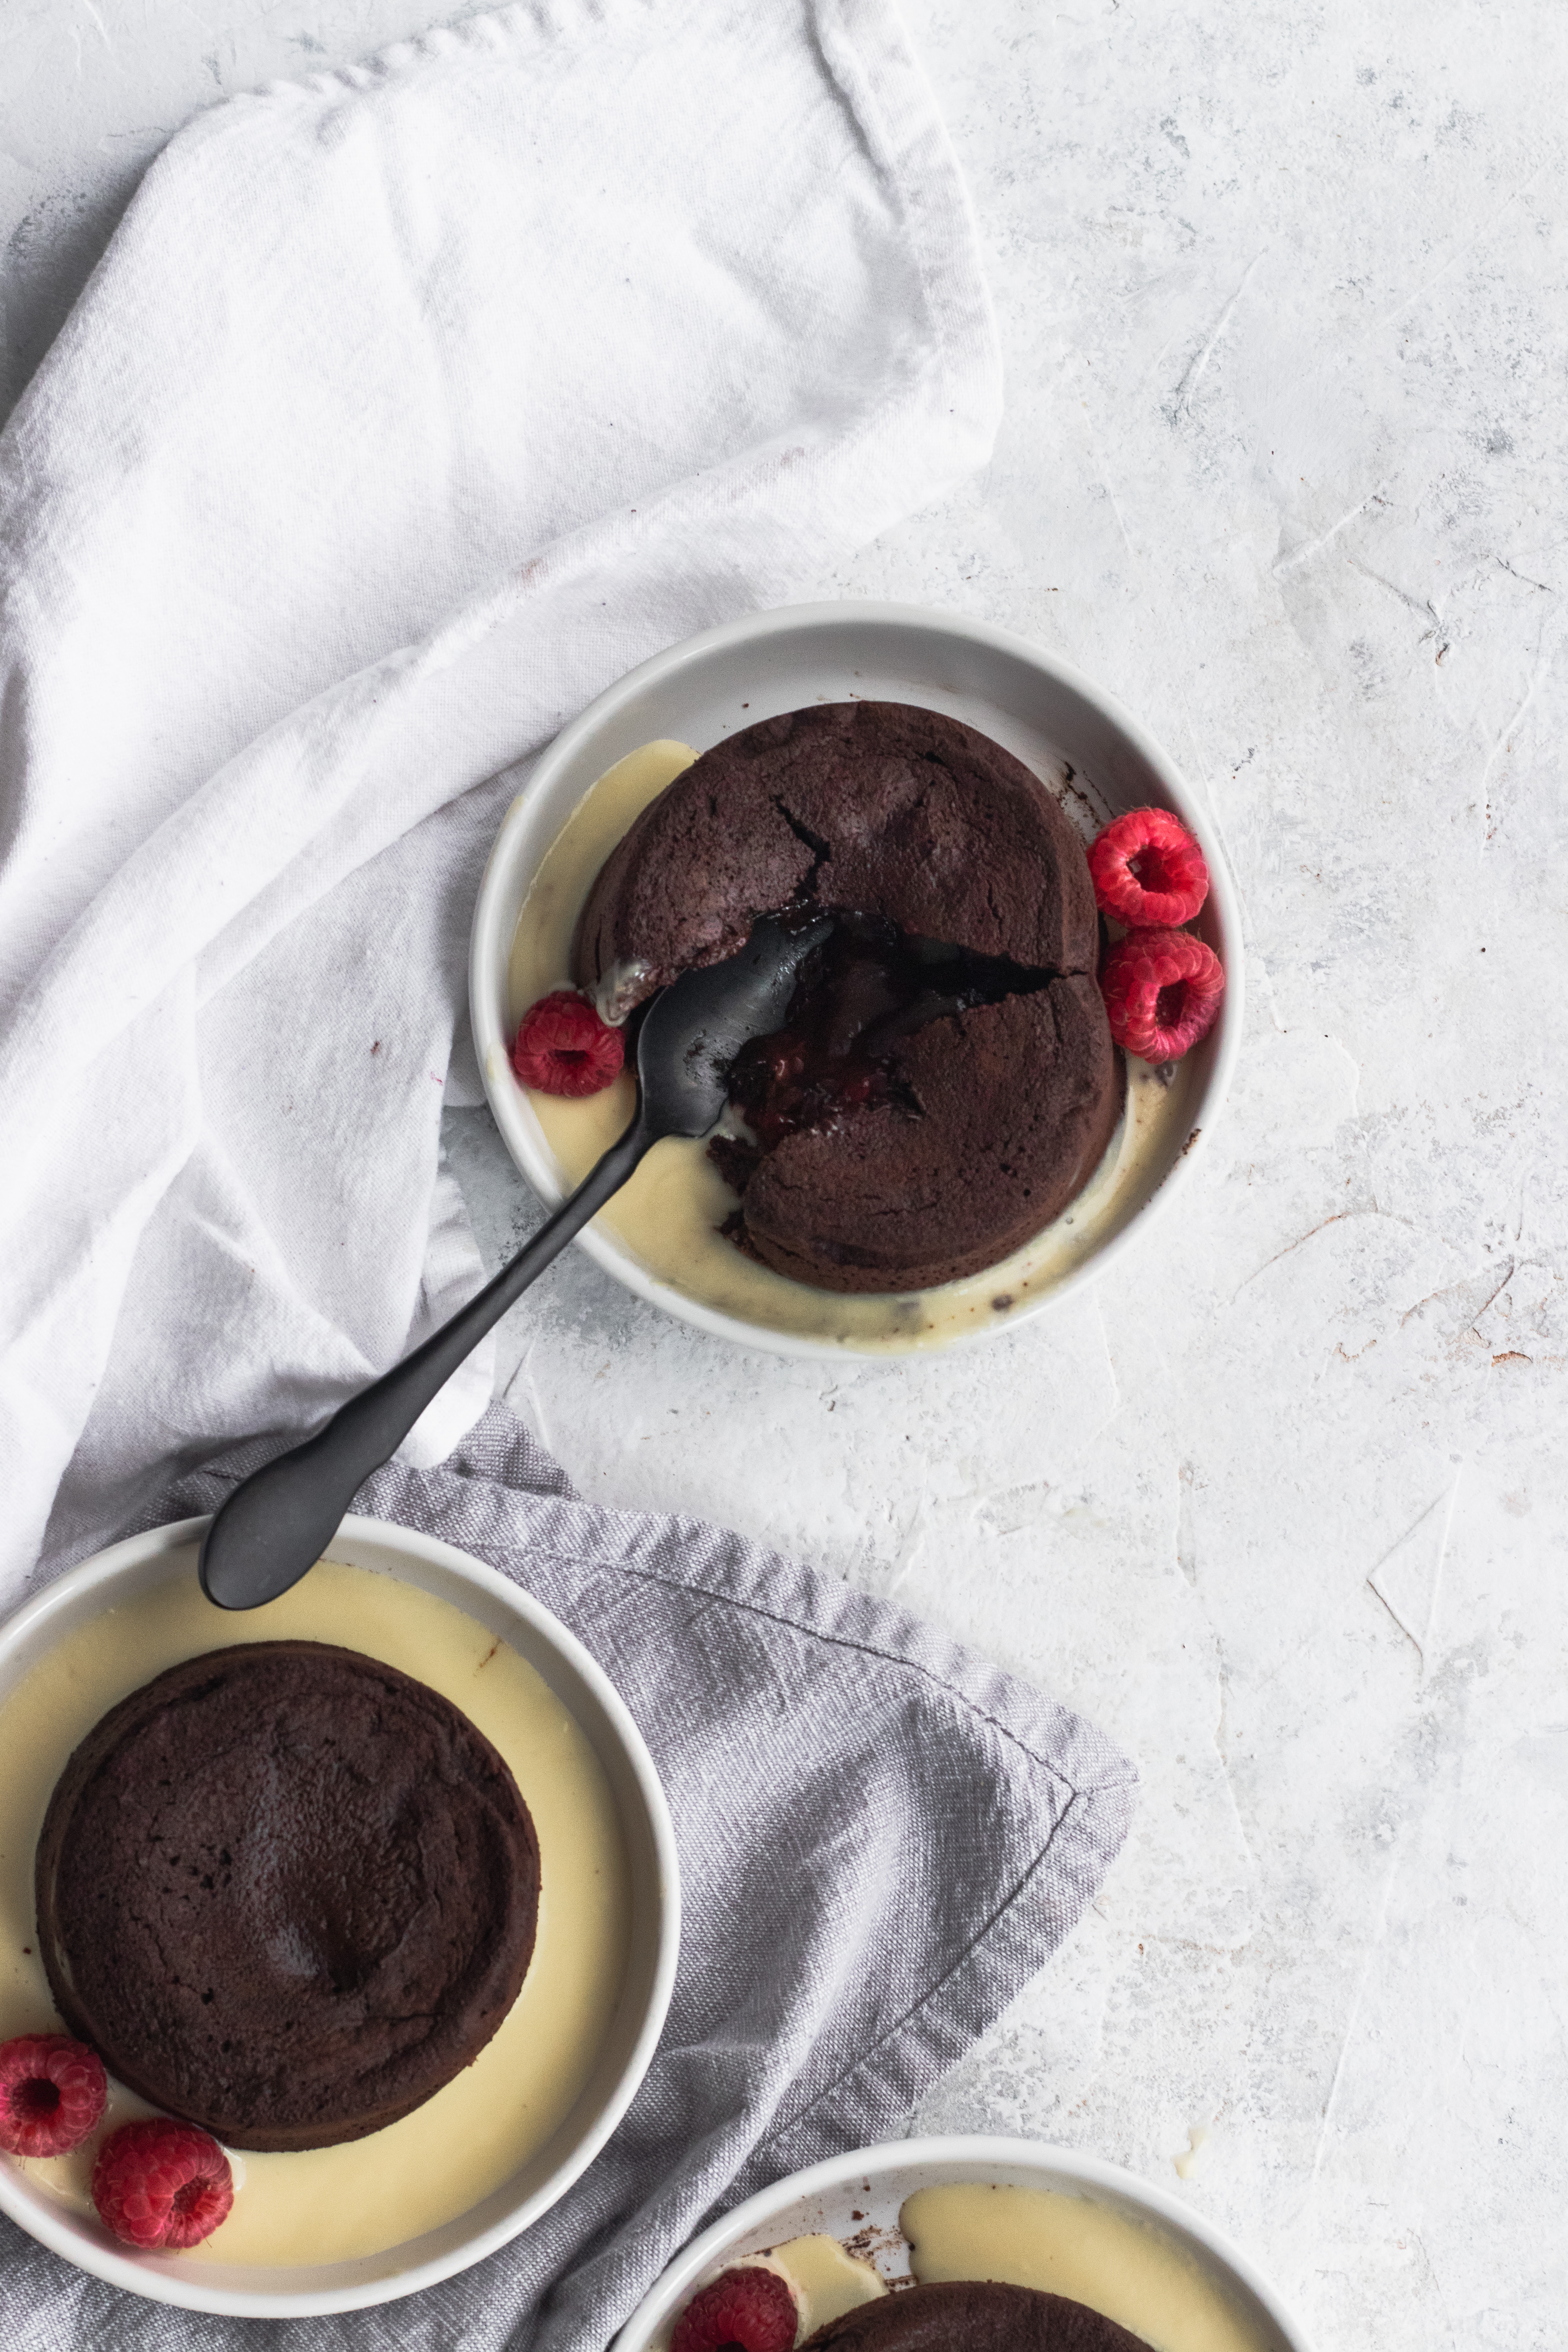 Raspberry Chocolate Lava Cakes with an oozing chocolate and raspberry center, garnished with creme anglaise and fresh raspberries